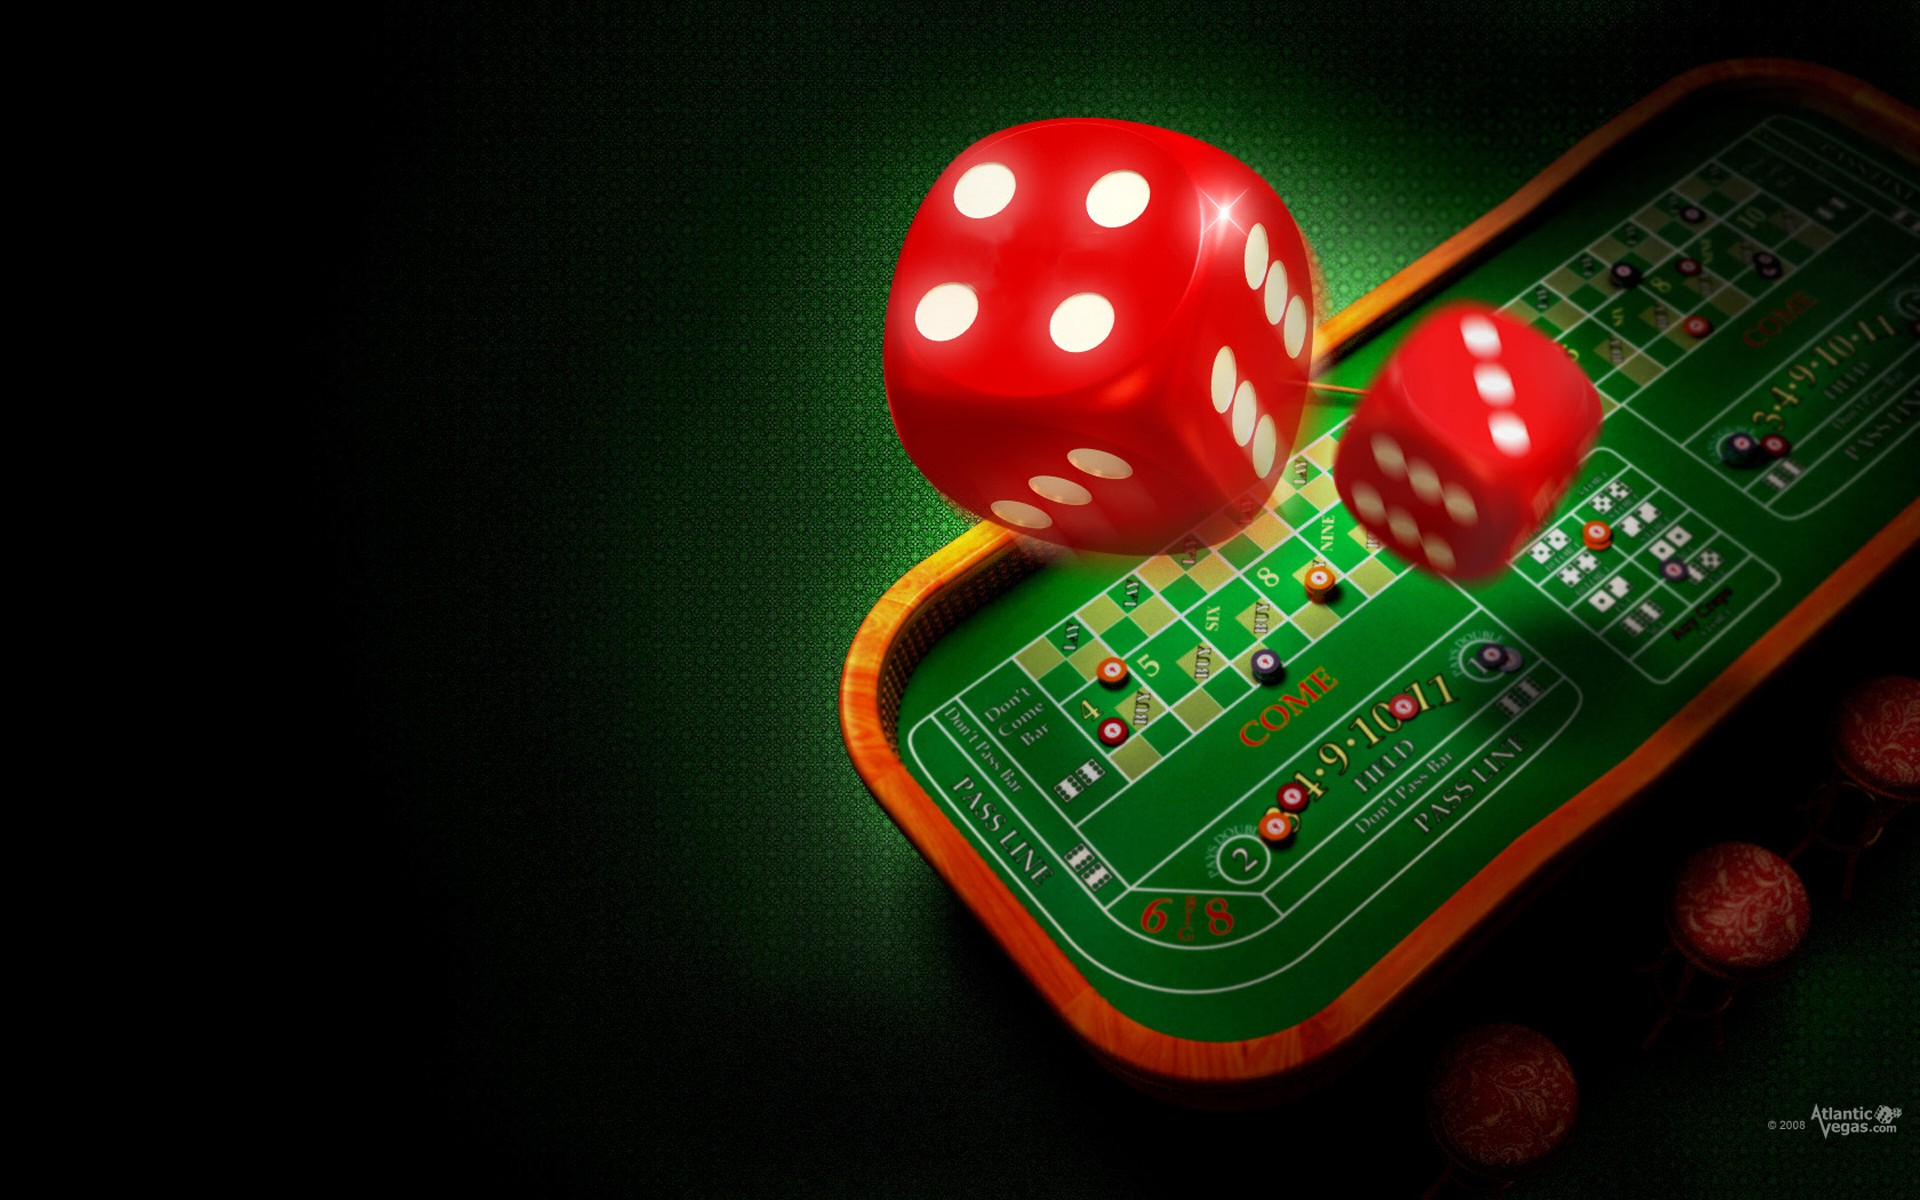 Are you looking for the best online poker site for playing poker games?